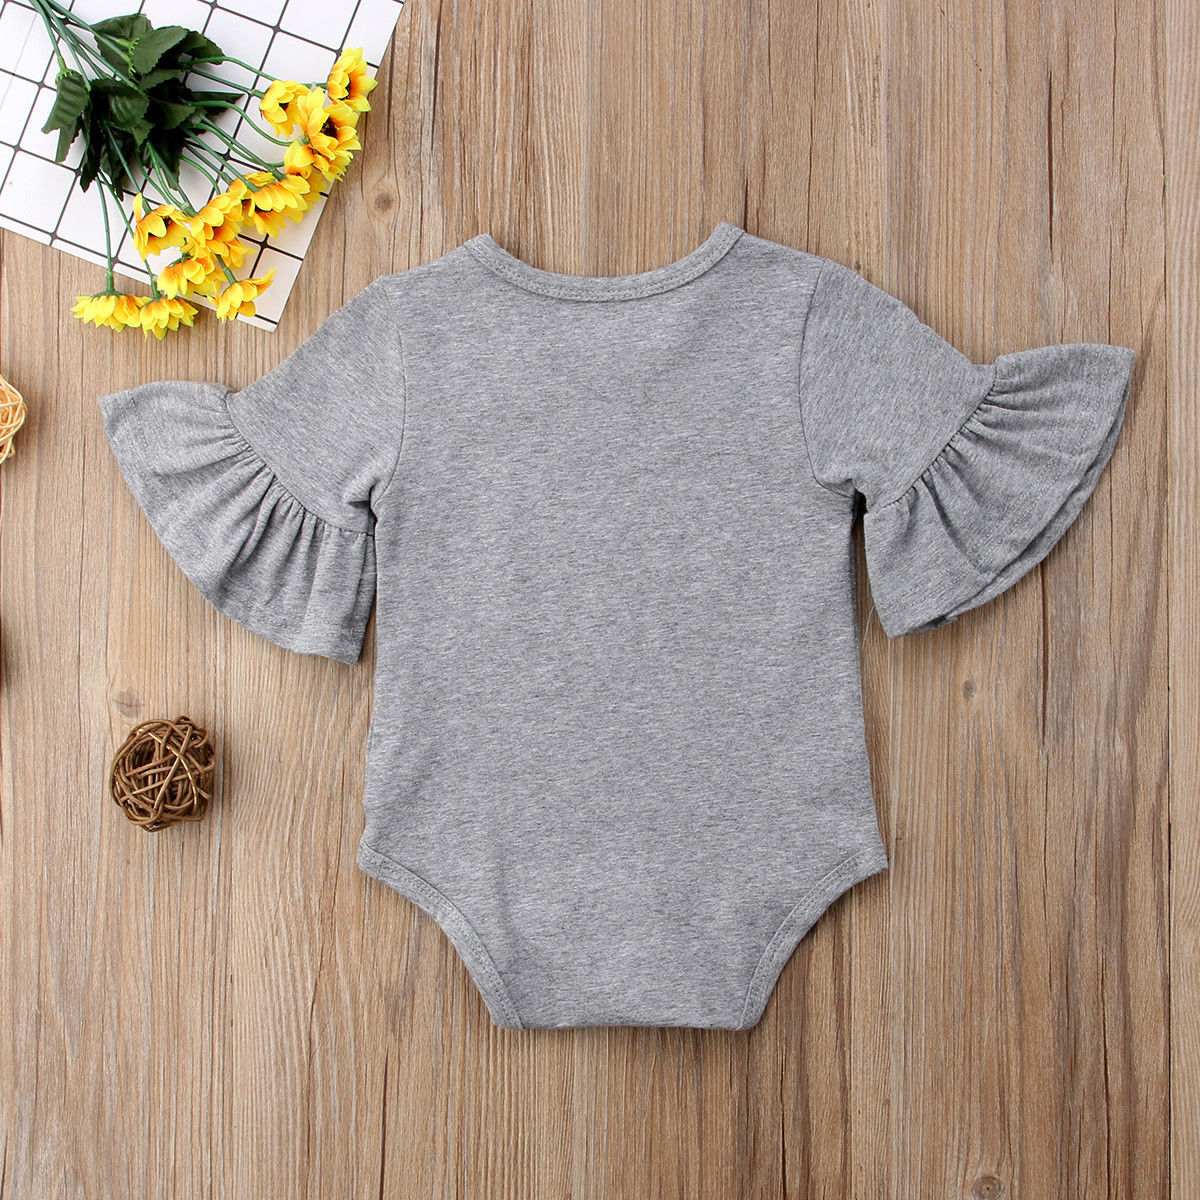 3 Color Newborn Infant Baby Girl Clothes Flared Sleeve Romper Brife Jumpsuit Sunsuit Outfits